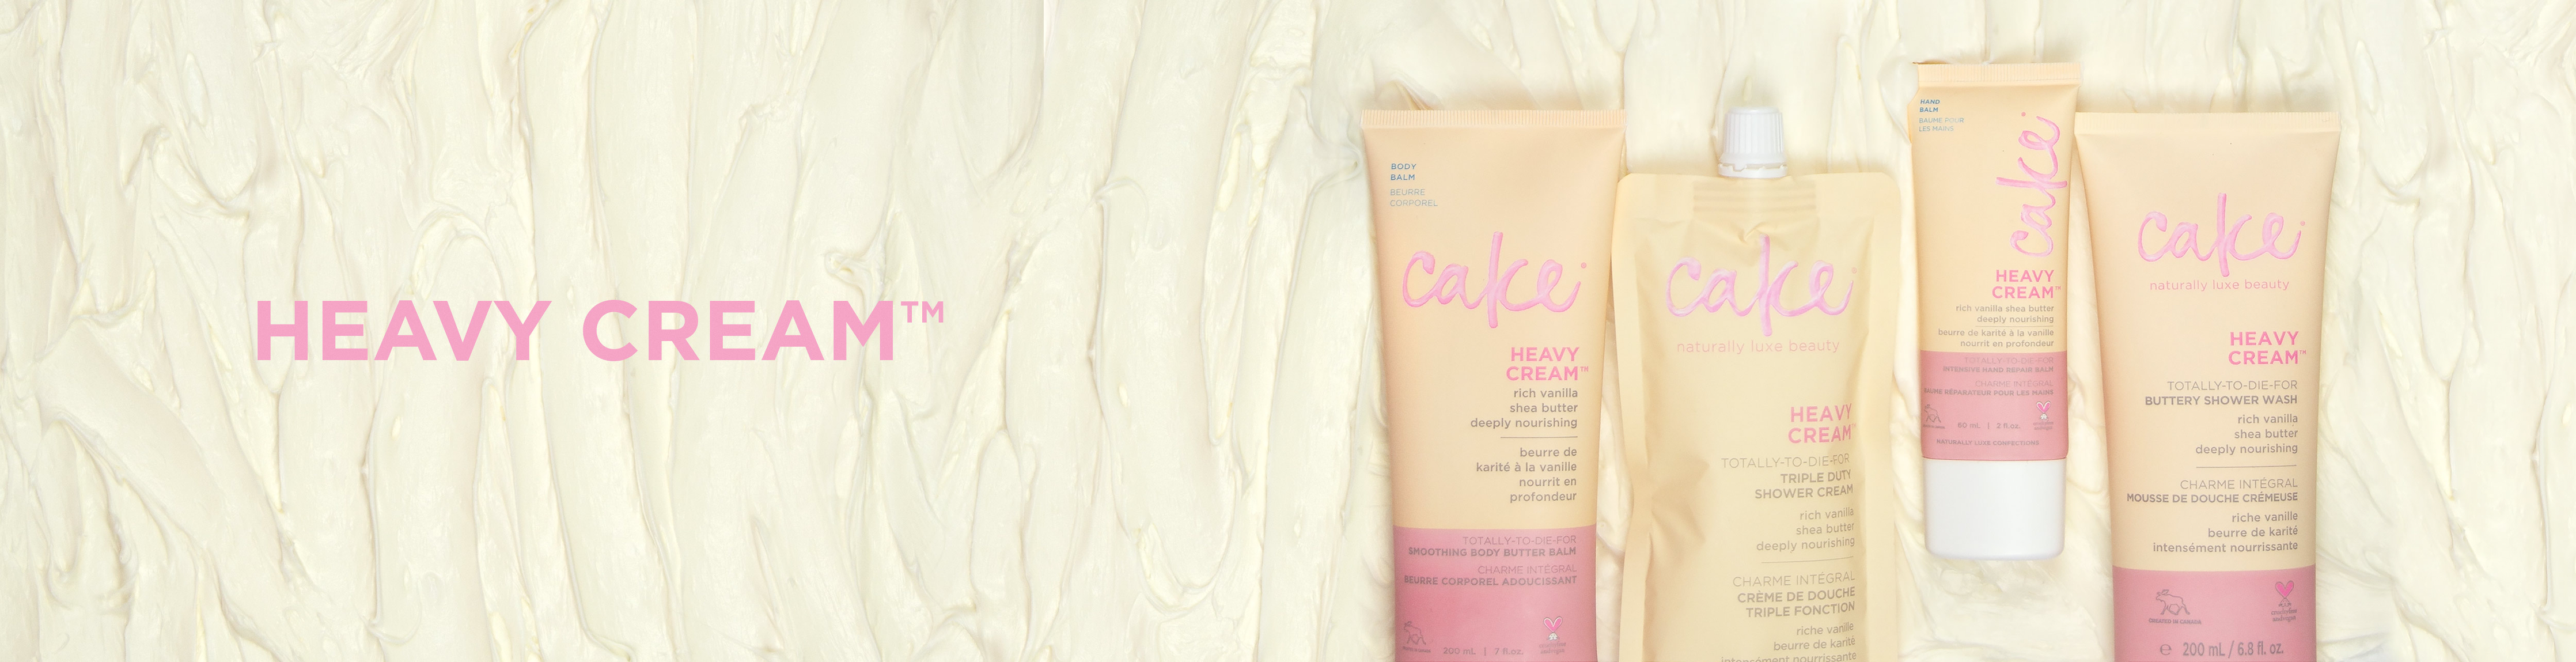 Cake Heavy Cream Collection | Scrub, Lotions, Hand Cream